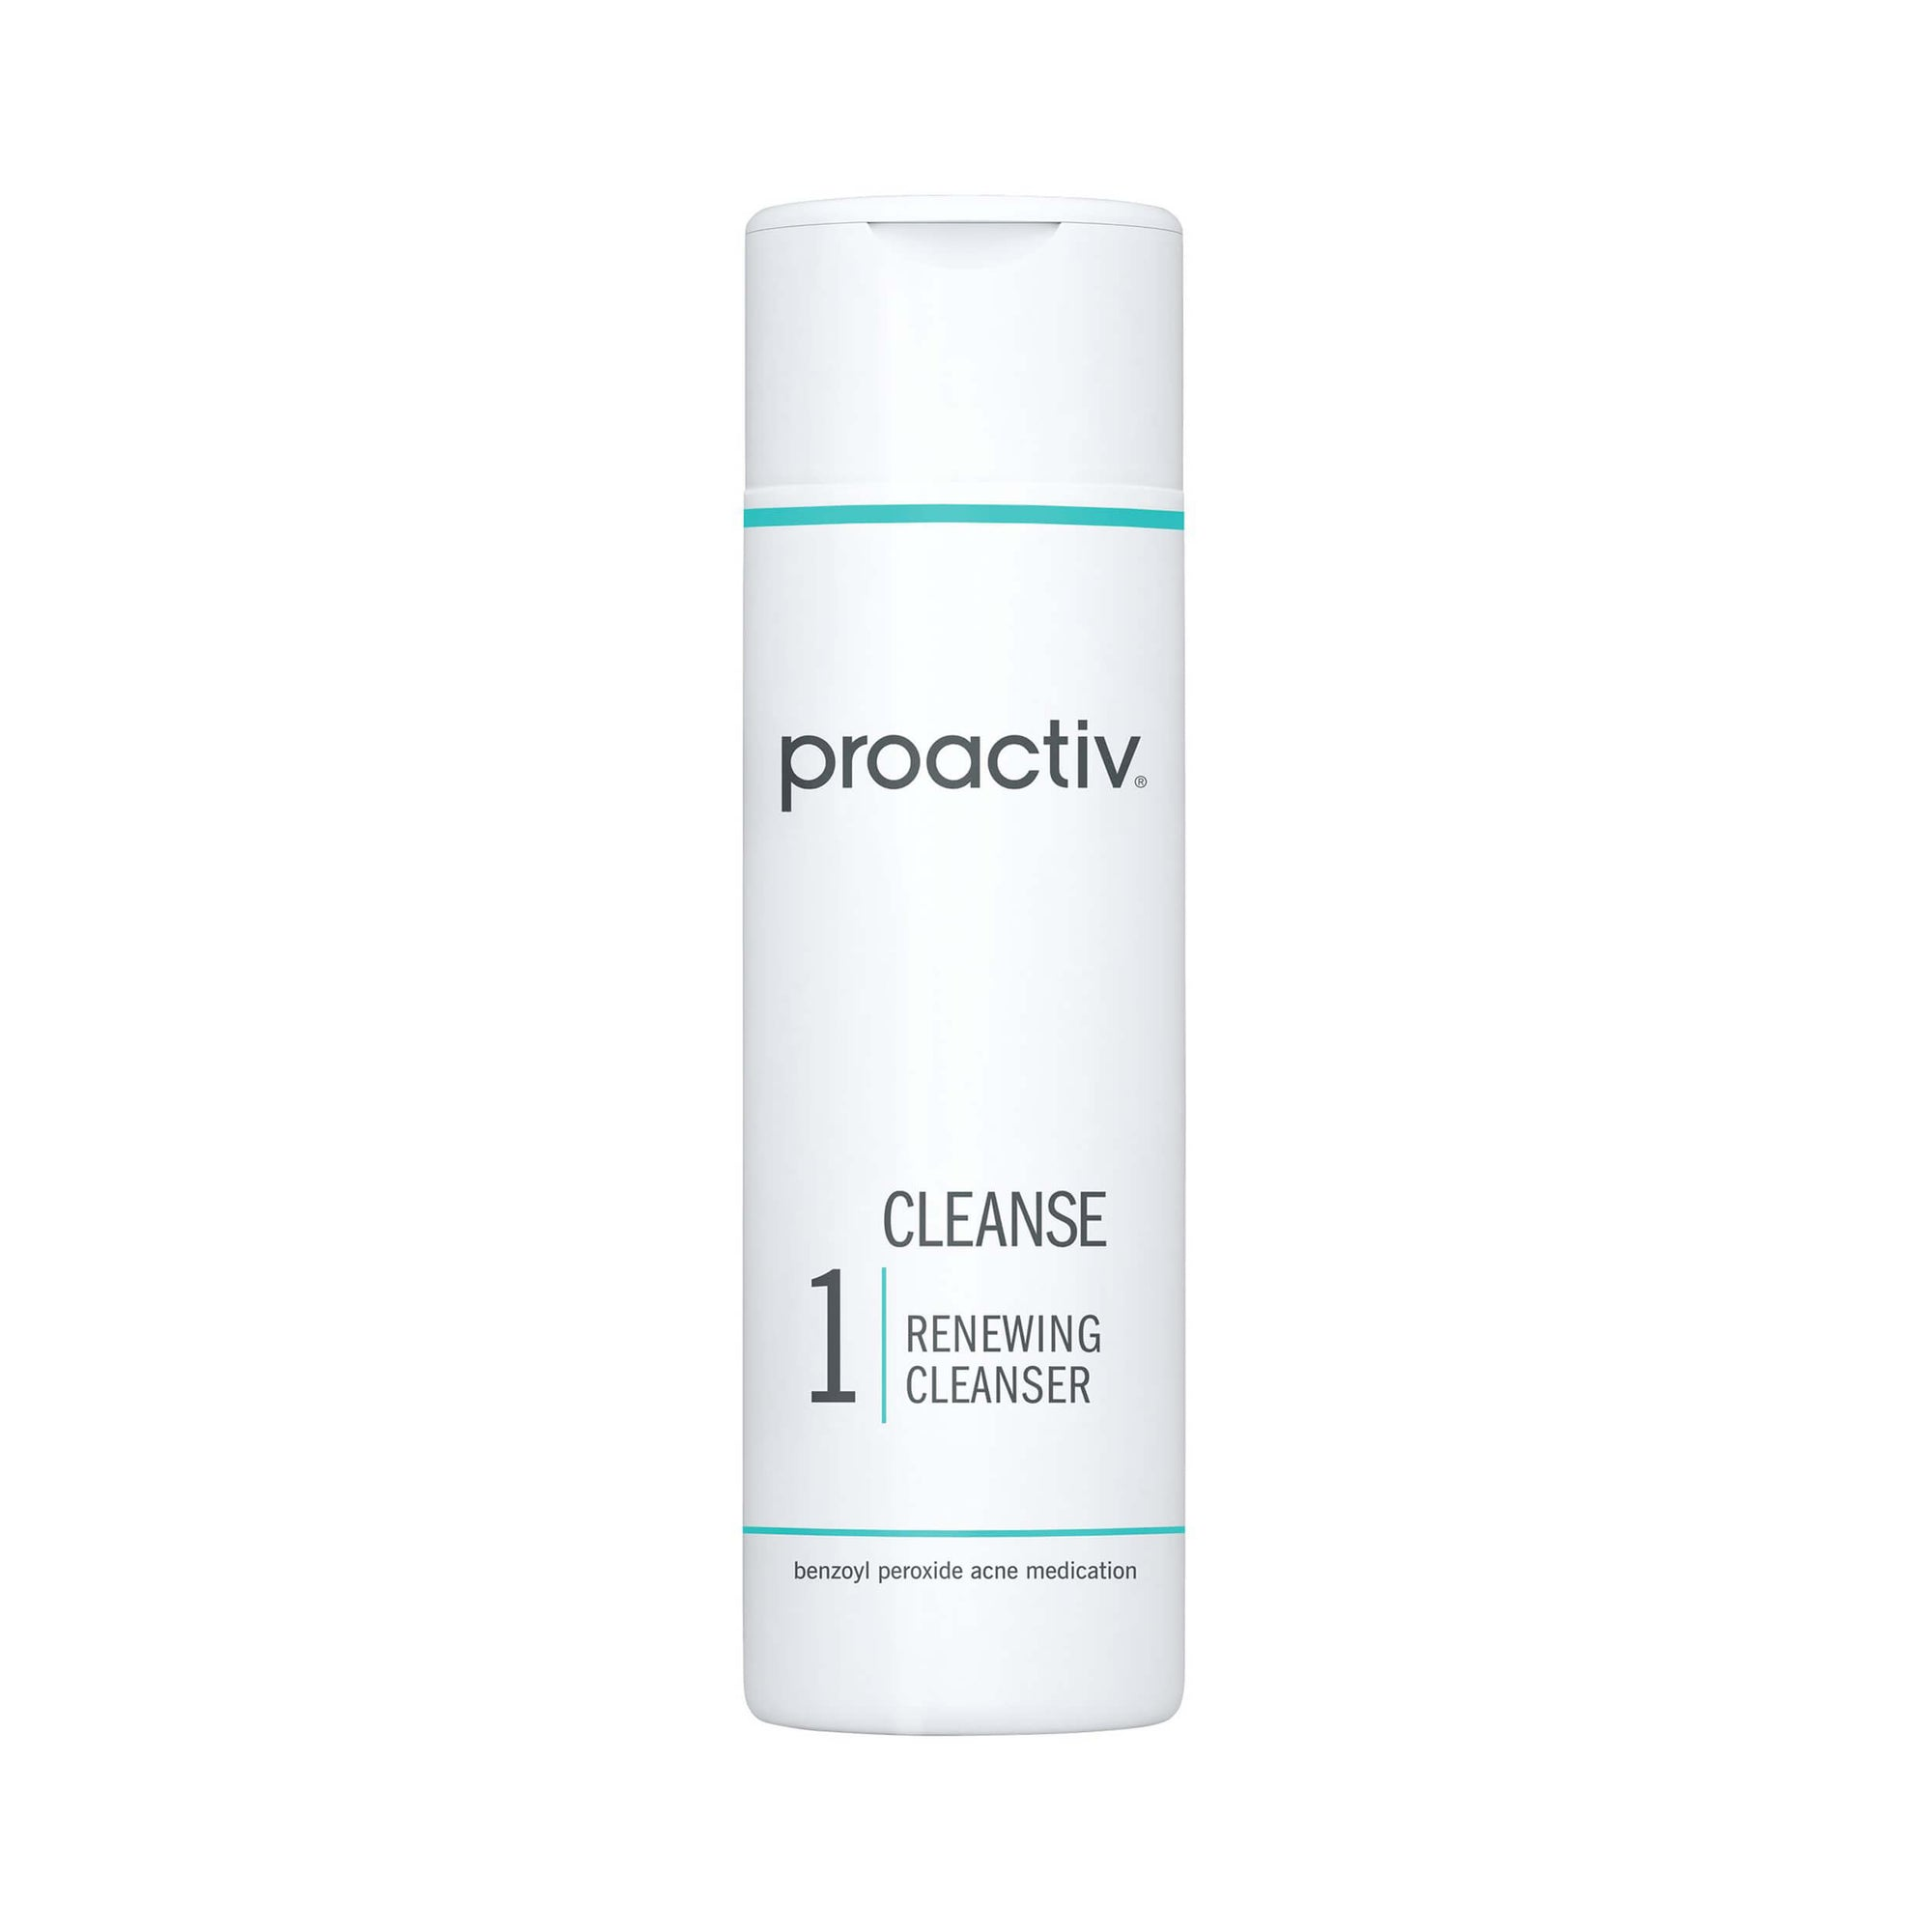 Proactiv Step 1 Cleanse